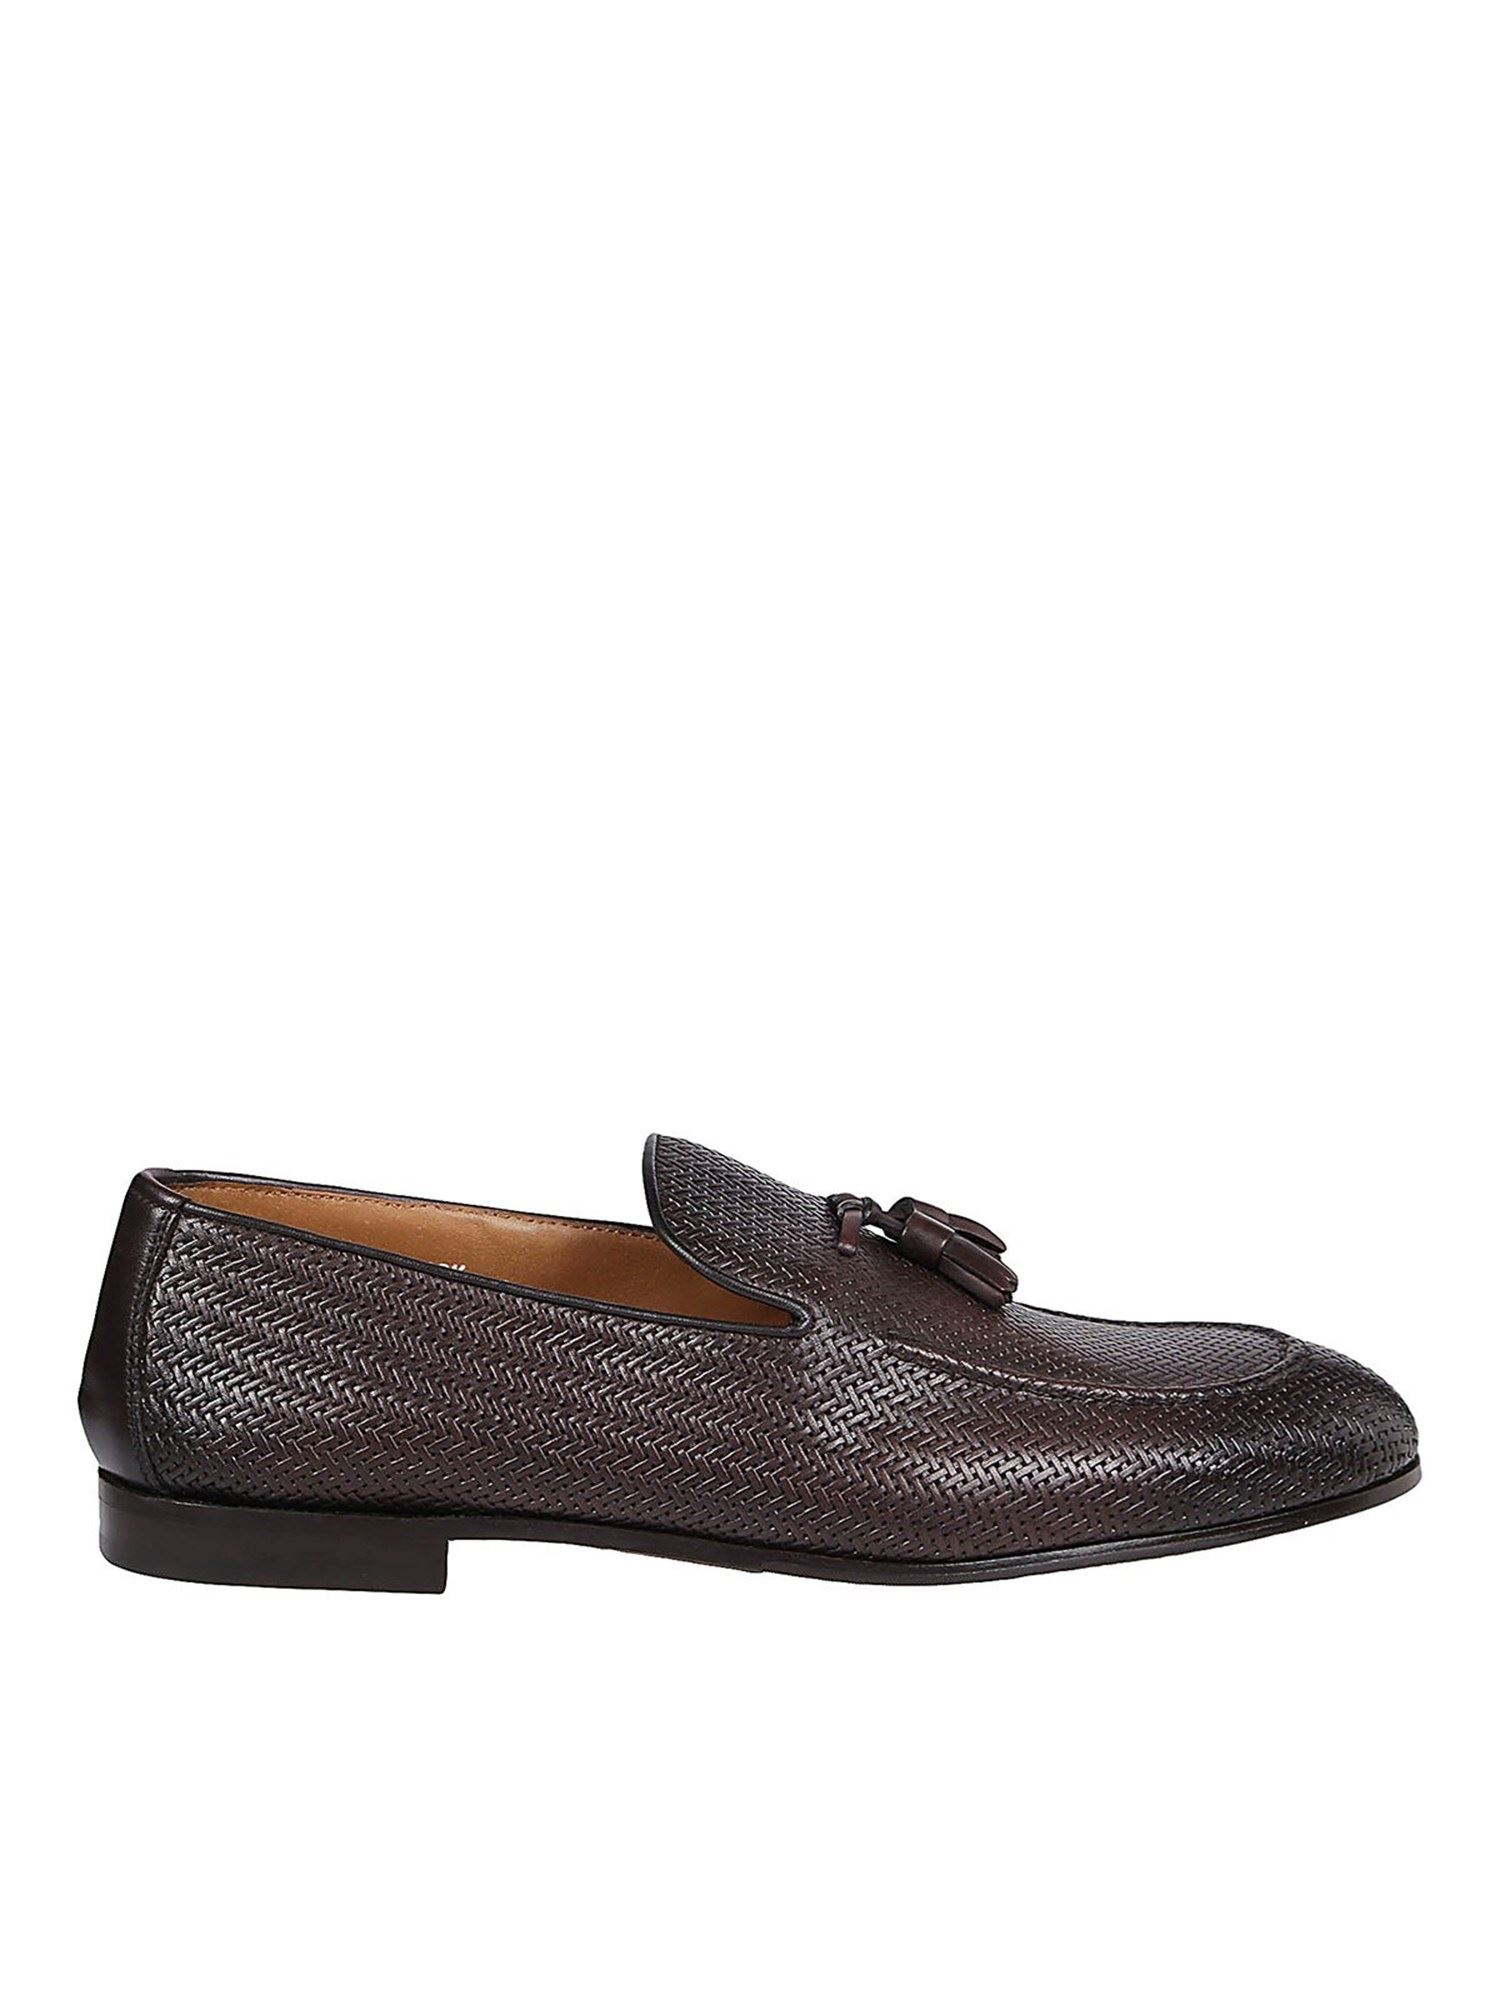 Doucal's Leathers WOVEN LEATHER LOAFERS IN BROWN